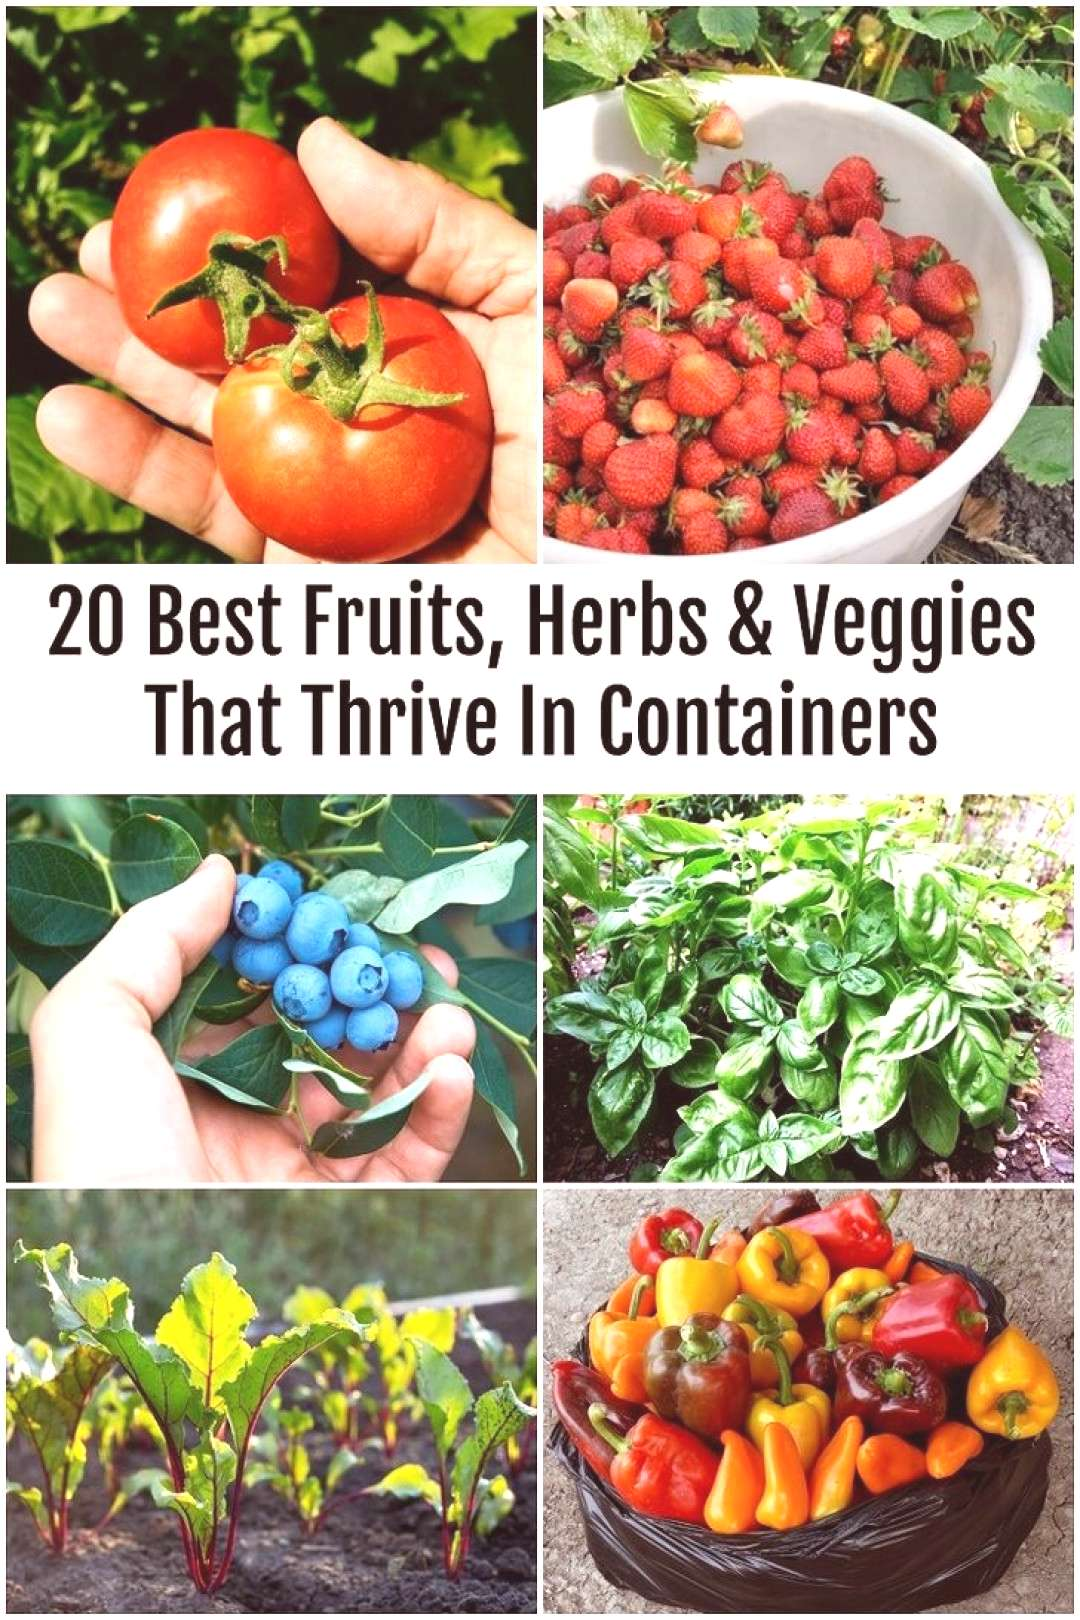 Having fresh and handy fruits, vegetables and herbs is not the only advantage to container gardenin